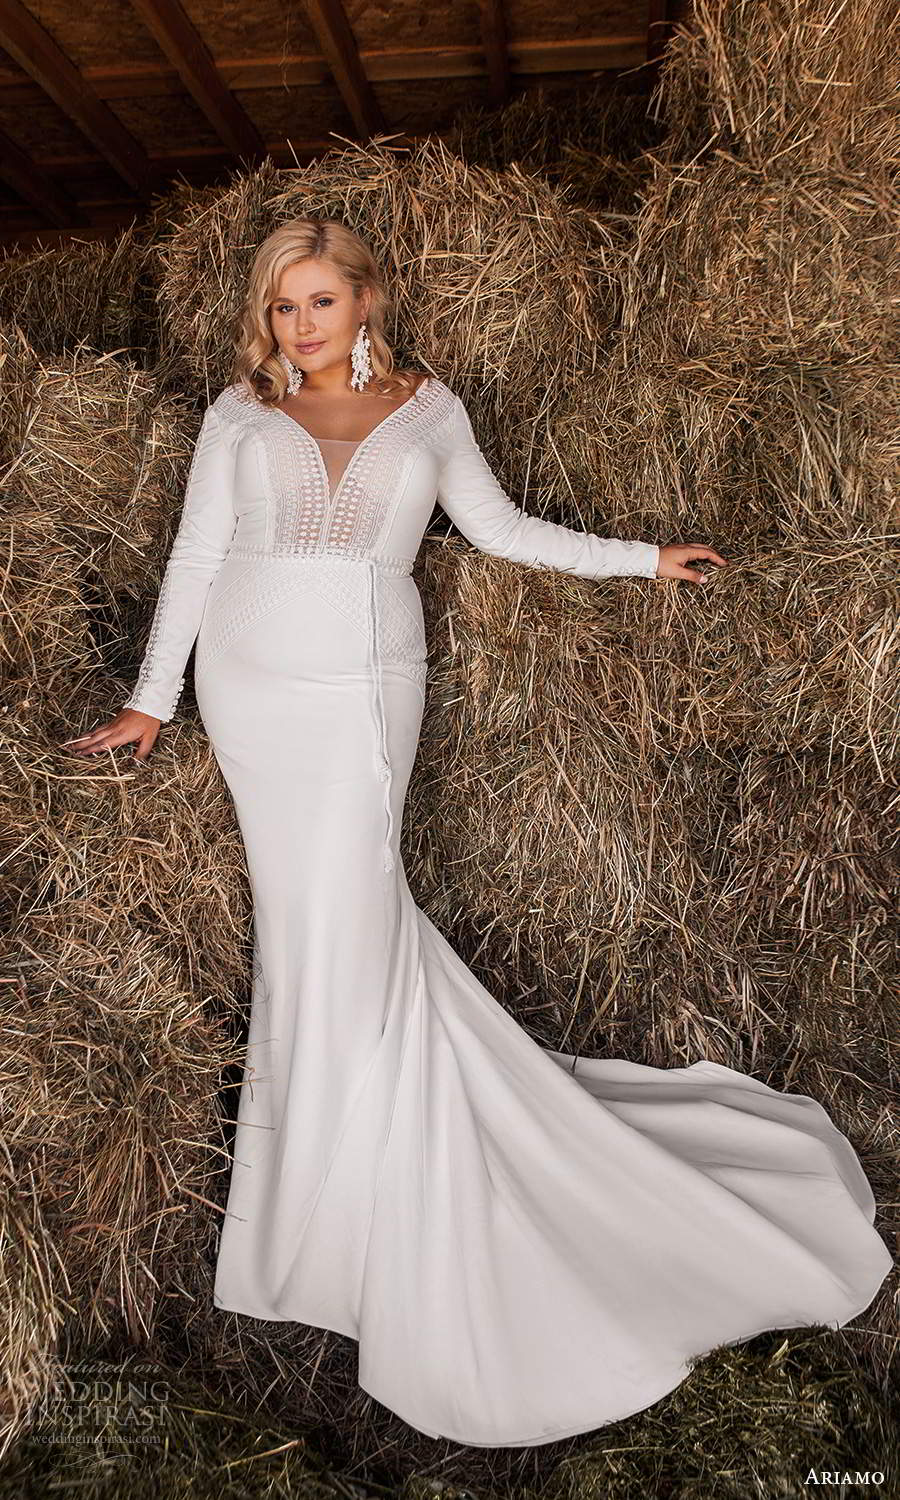 ariamo 2021 plus bridal long sleeves plunging v neckline clean minimalist mermaid sheath wedding dress chapel train (4) mv